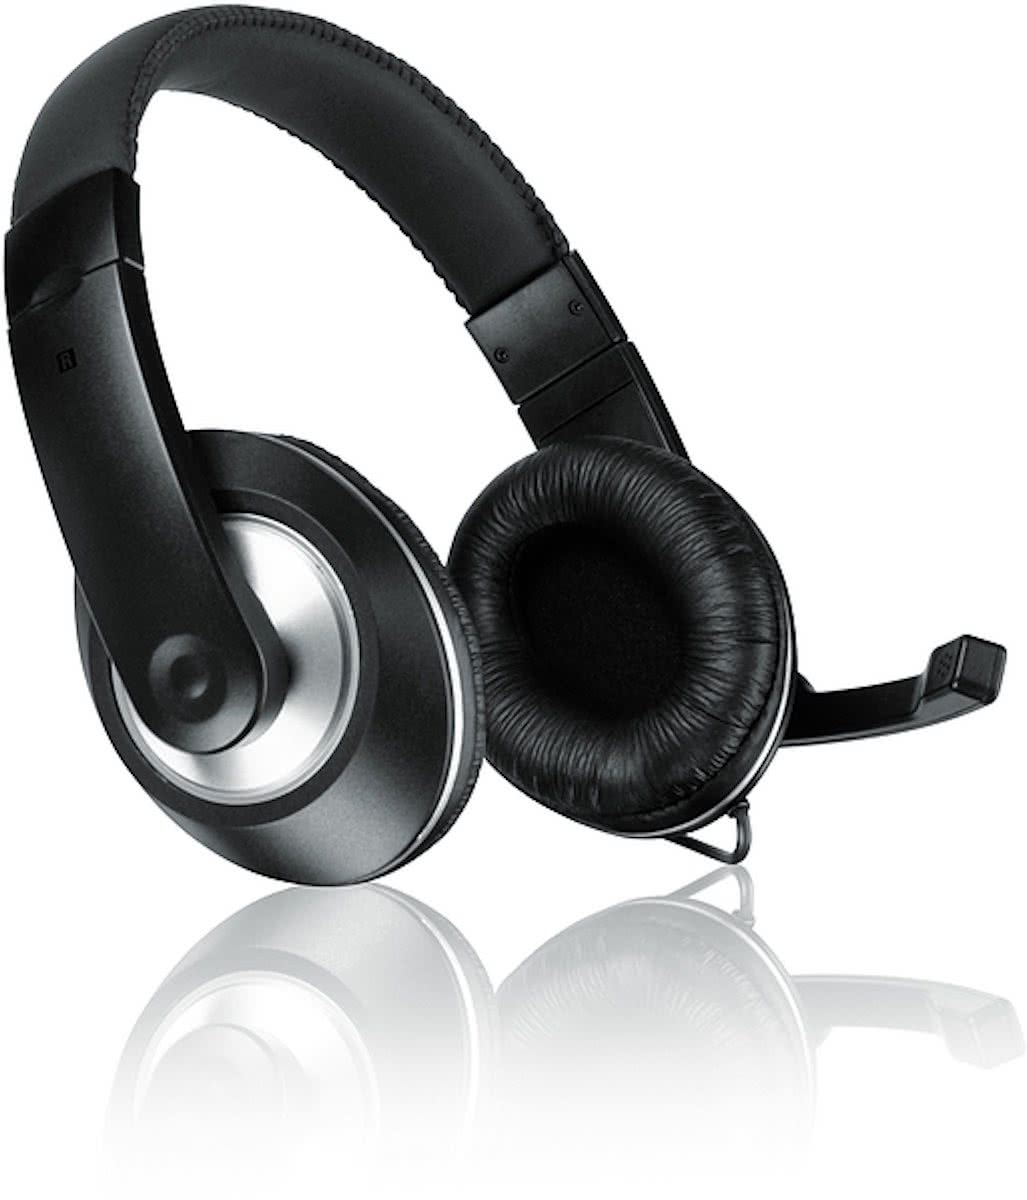 Speedlink, Thebe CS Stereo Headset (Black)